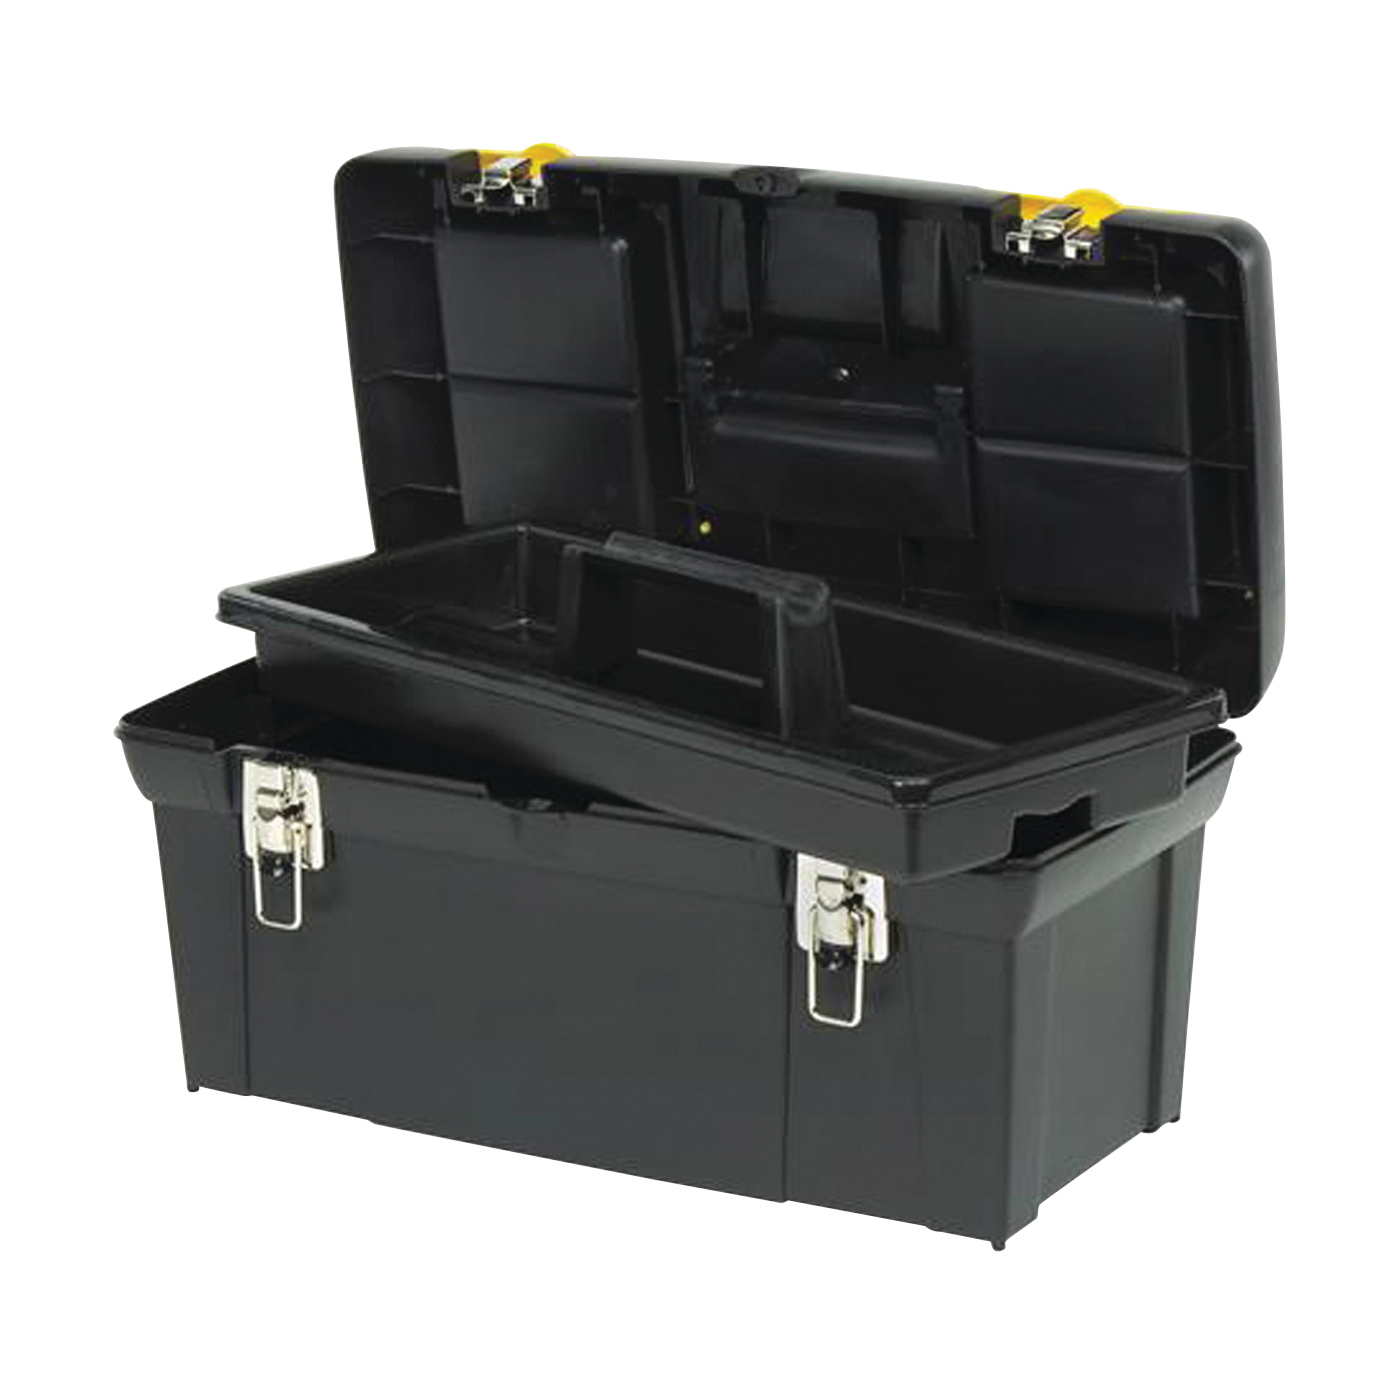 Picture of STANLEY 024013S Tool Box with Tray, 8.1 gal, Plastic, Black/Yellow, 5 -Compartment